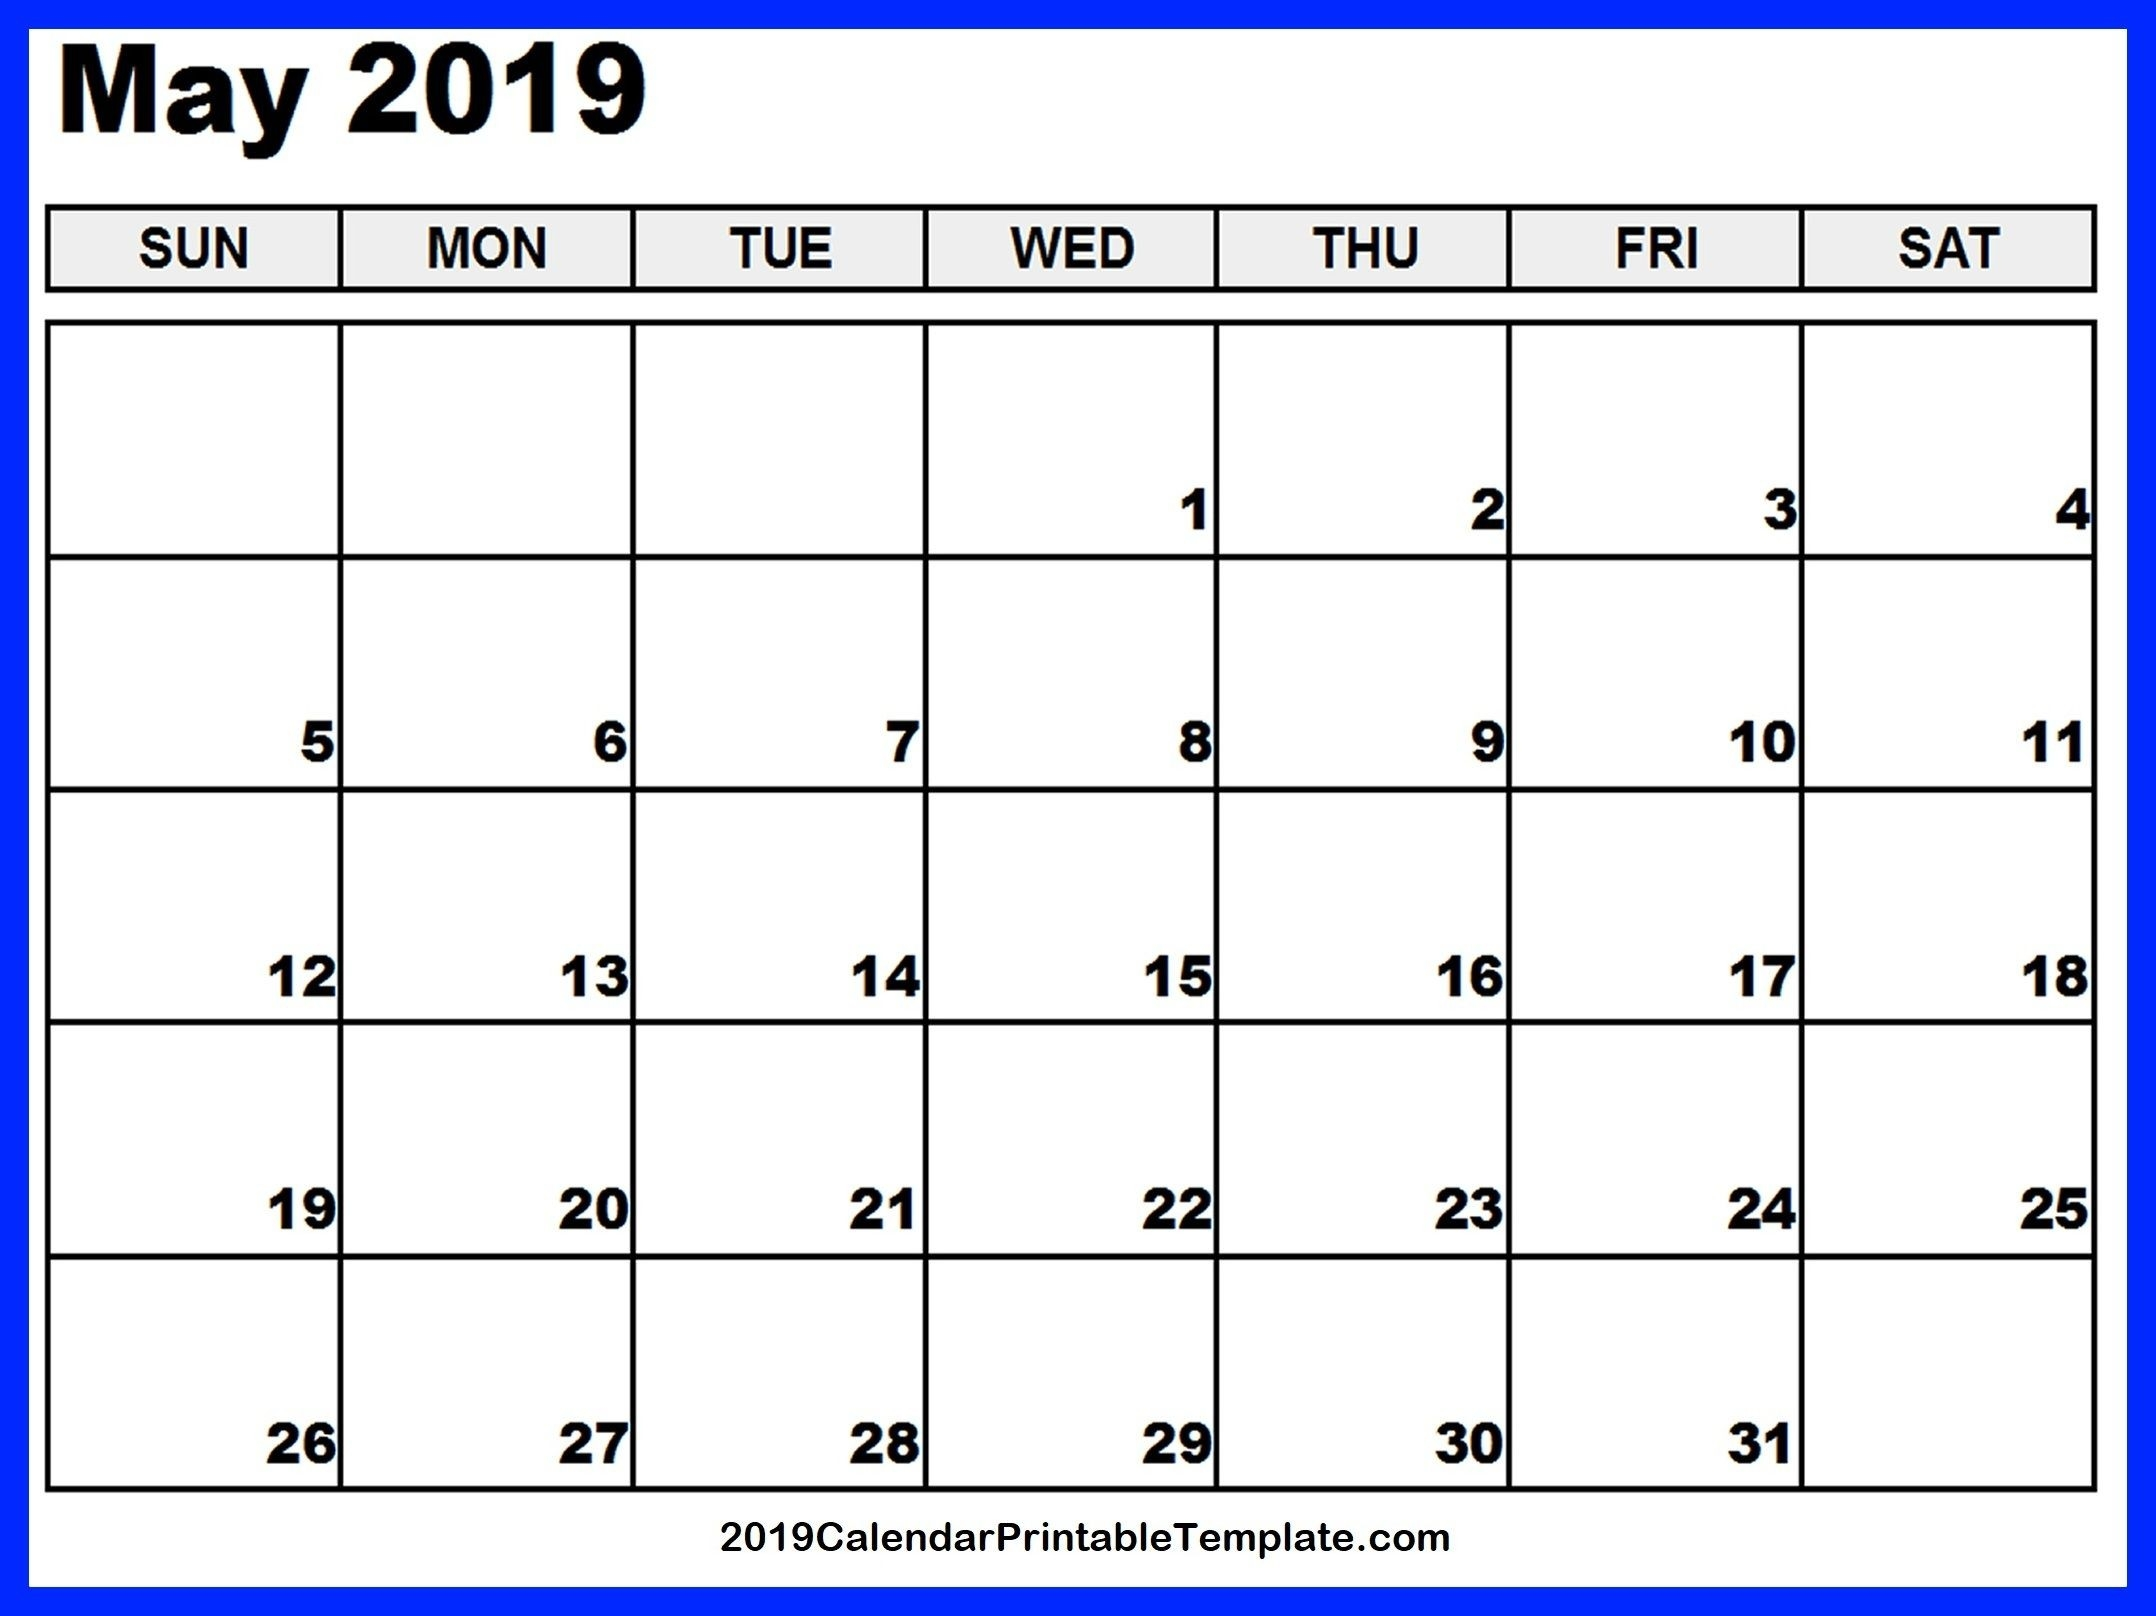 Pin By Joe Luera On Stuff | June Calendar Printable-Calendar May 2021 Free Printables With Mickey Mouse